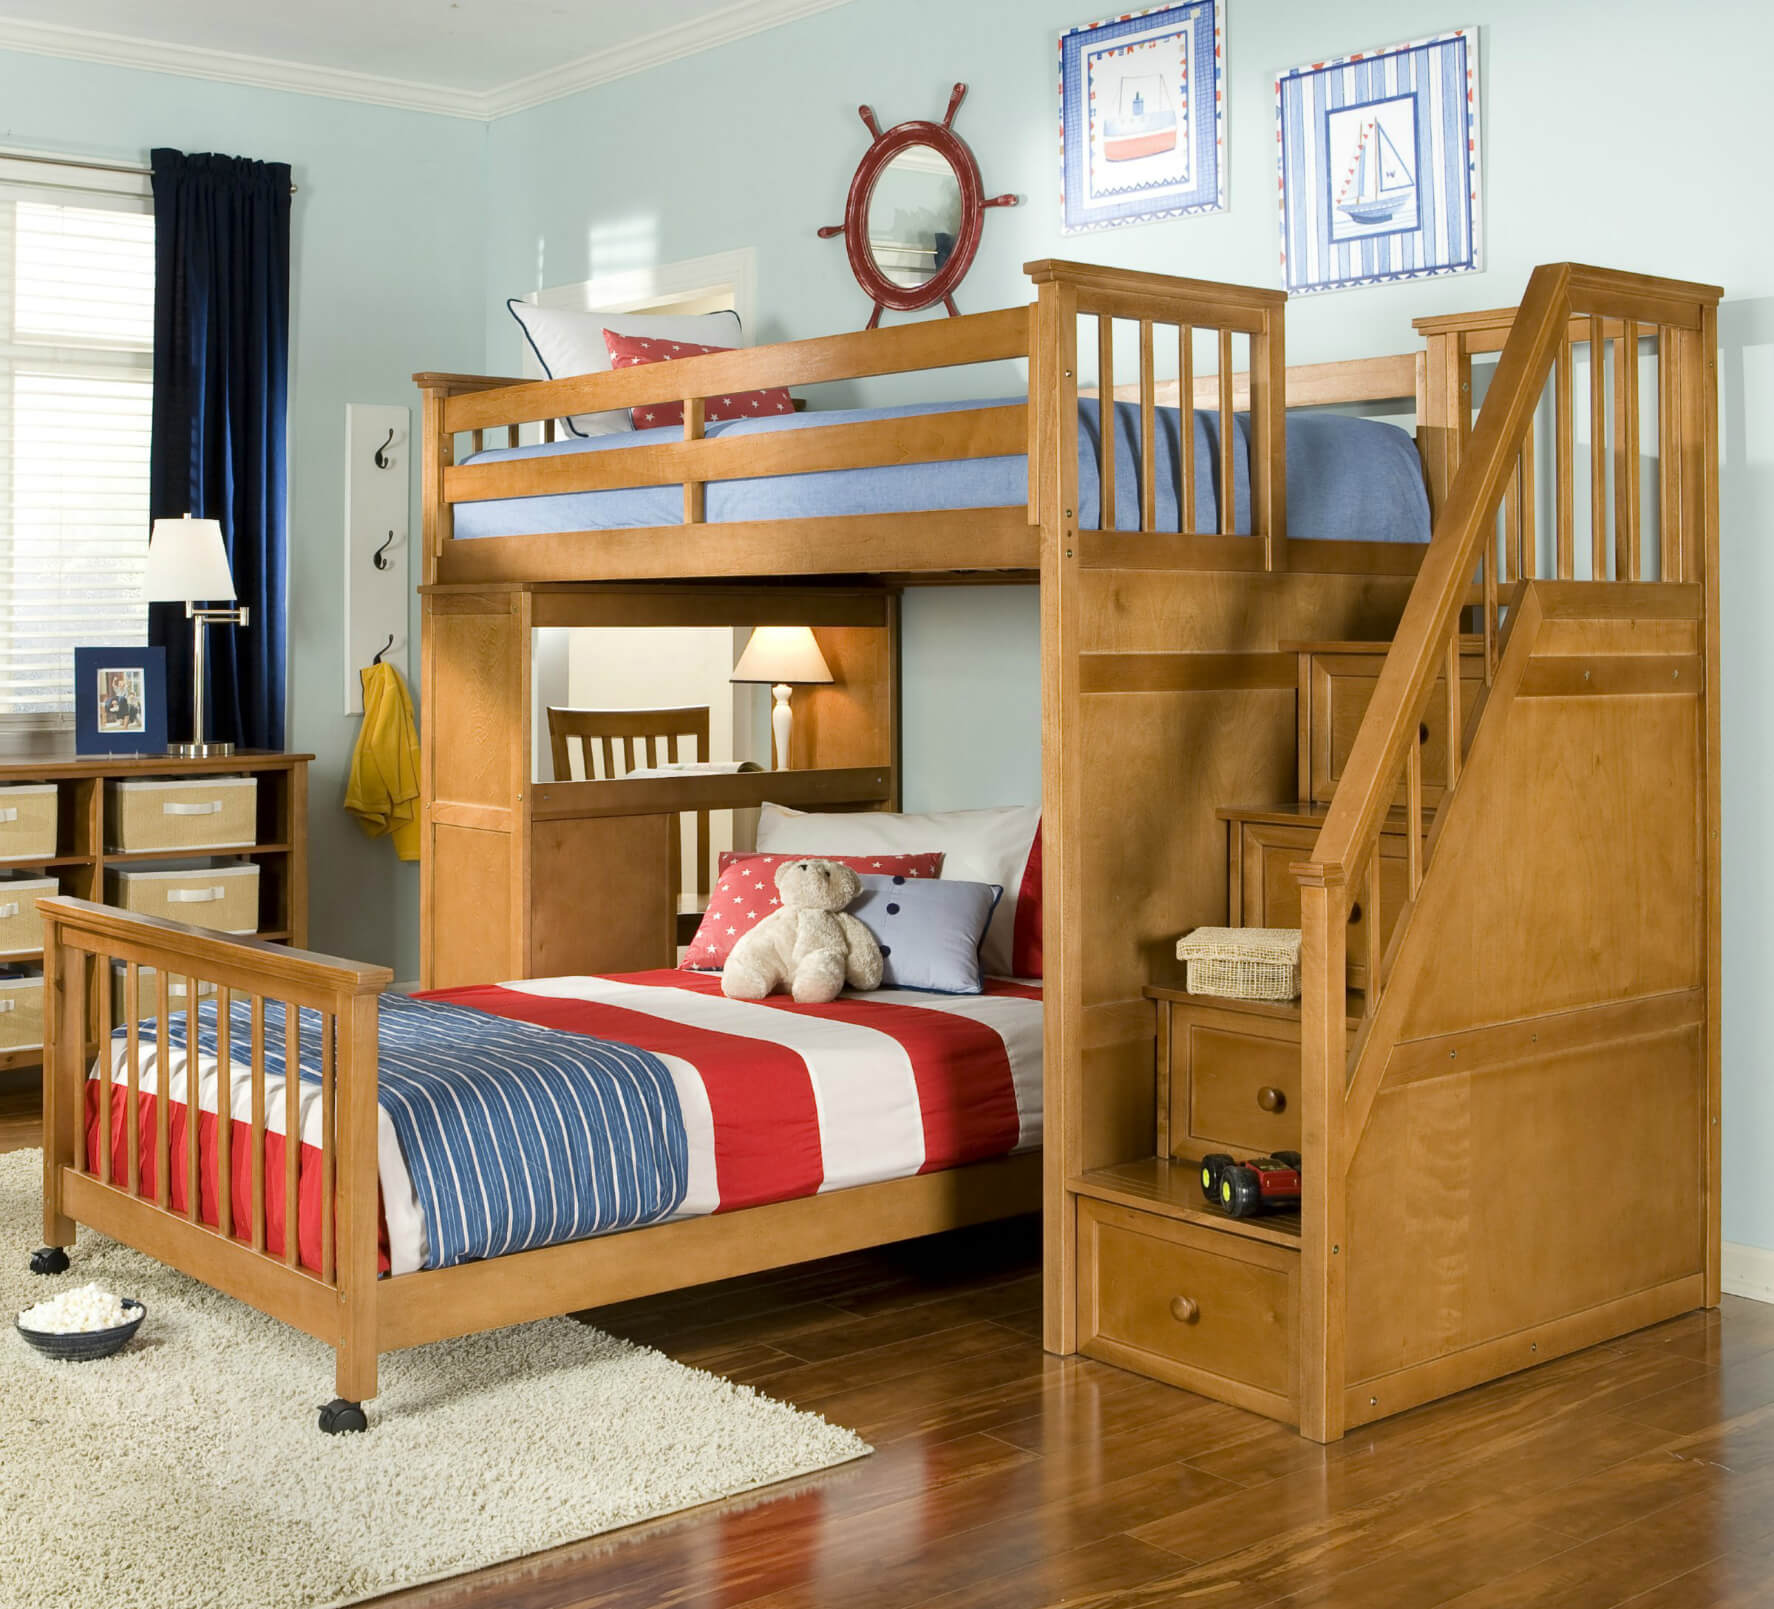 Wood bunk beds with desk - Pecan Hardwood L Shaped Bed Includes A Staircase And Desk Lower Bed Can